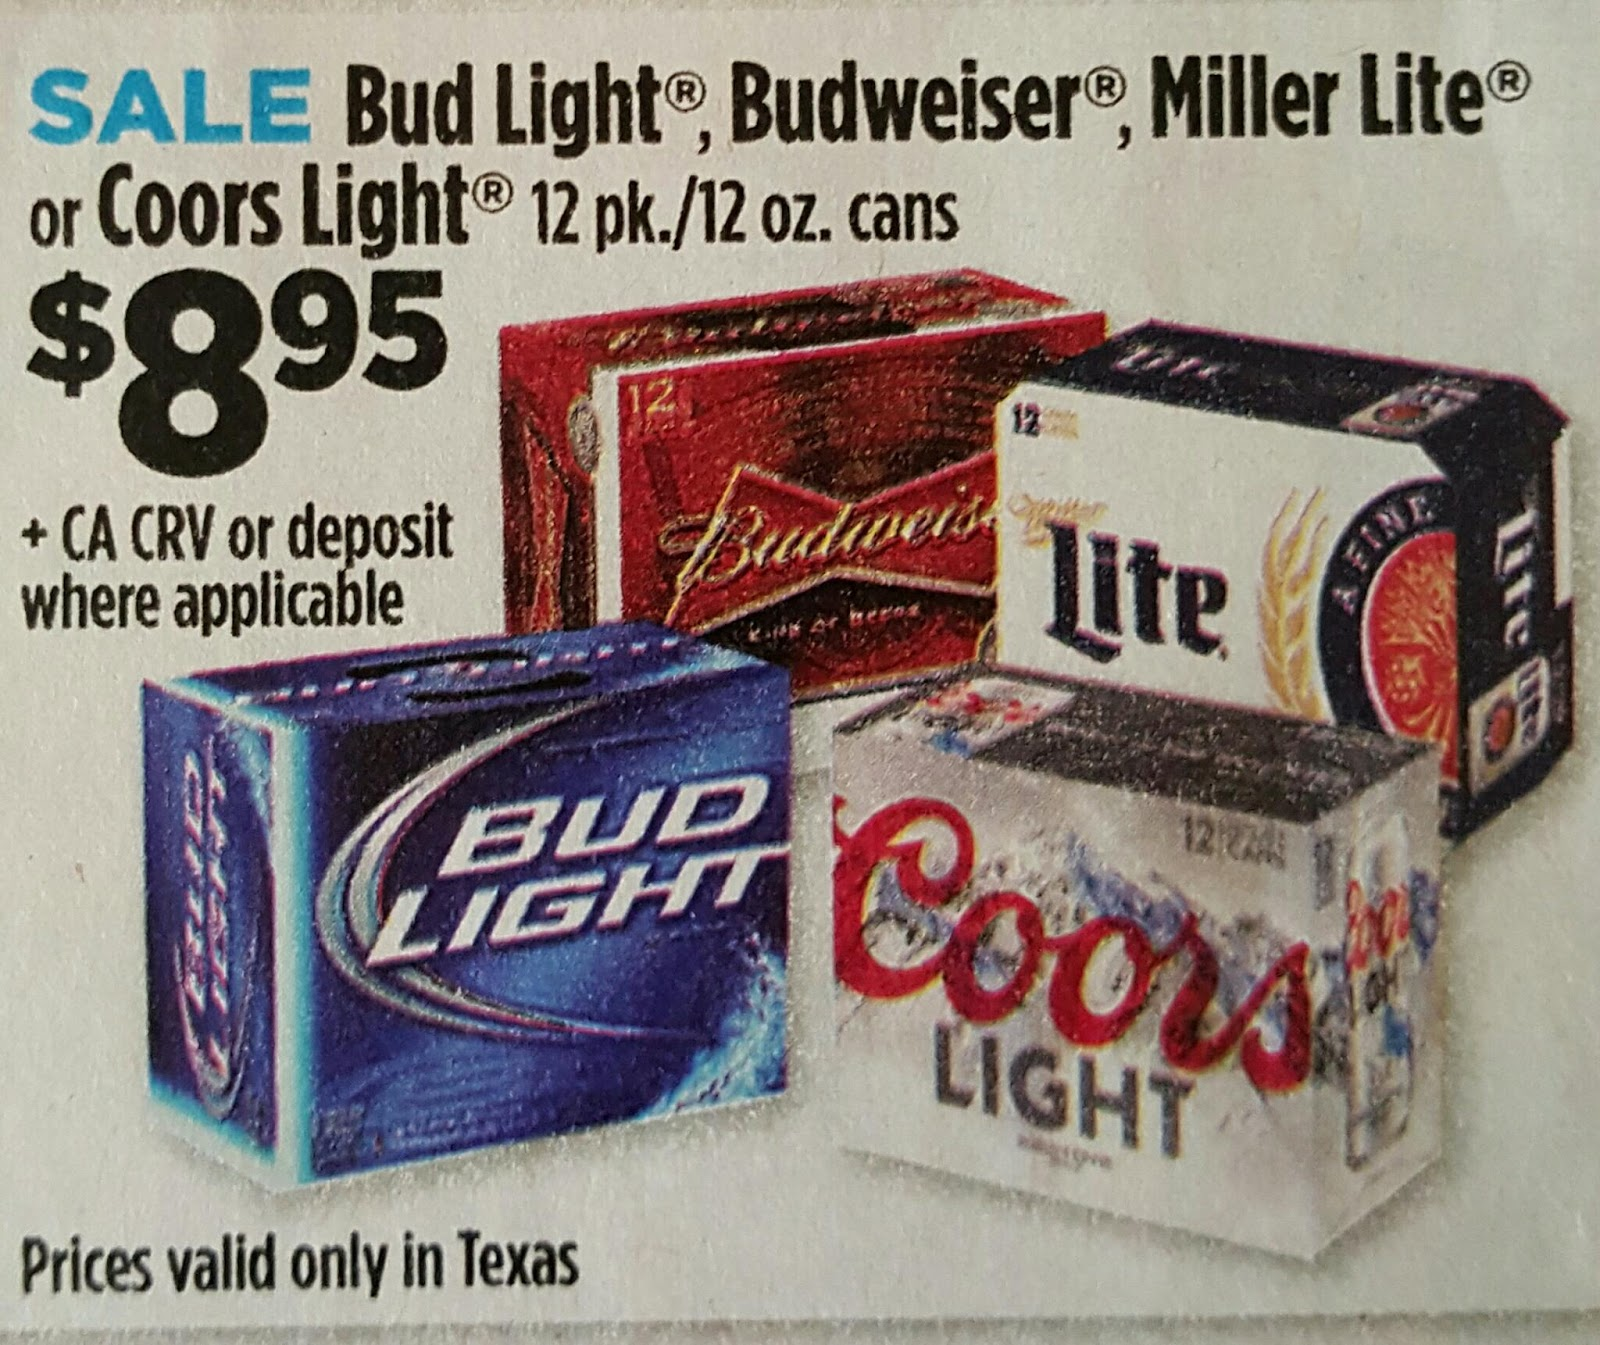 Bud Light Coupons